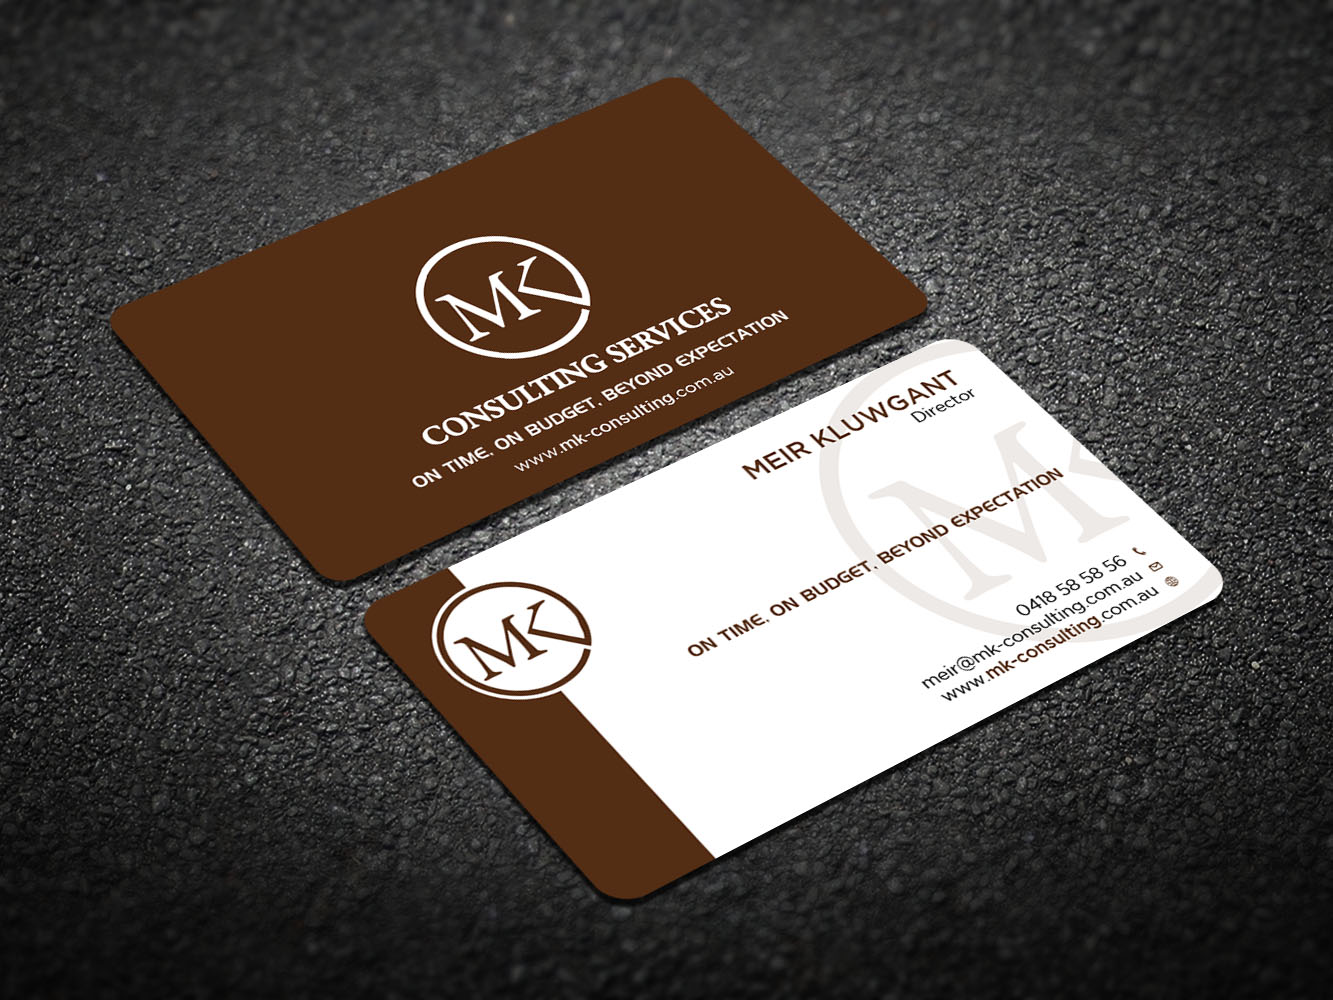 Serious professional consulting business card design for msk business card design by design xeneration for msk enterprises pl design reheart Gallery